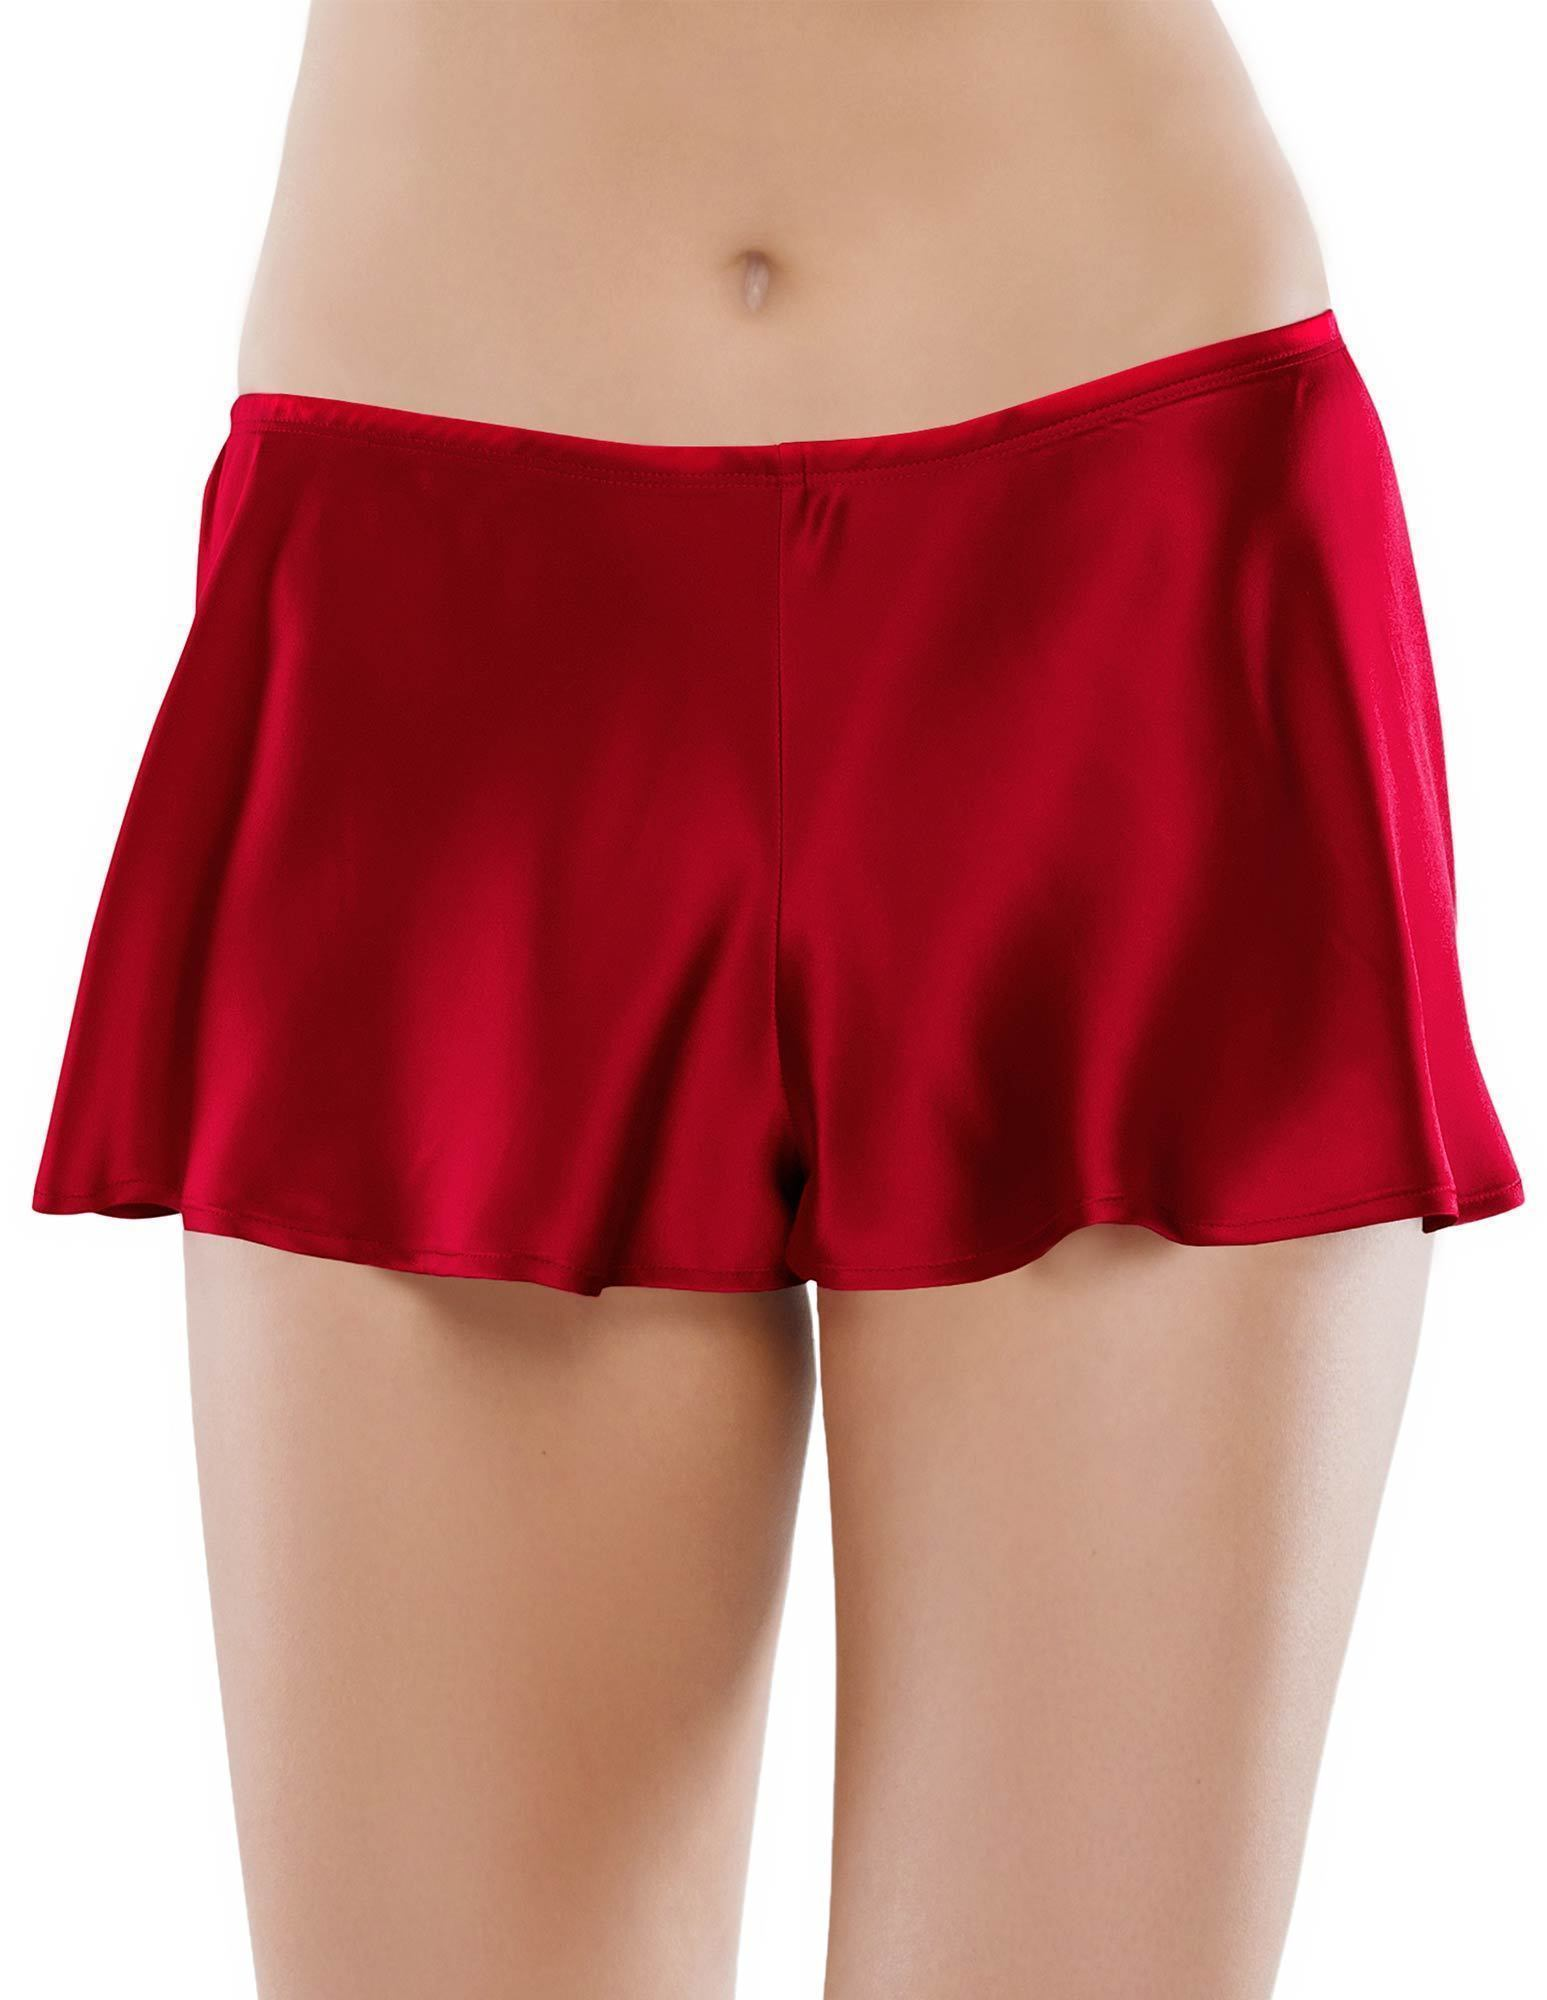 903c58841a9d Red silk Tap Pants - Odessa Eye-Candy Tap Pant in Scarlet ...